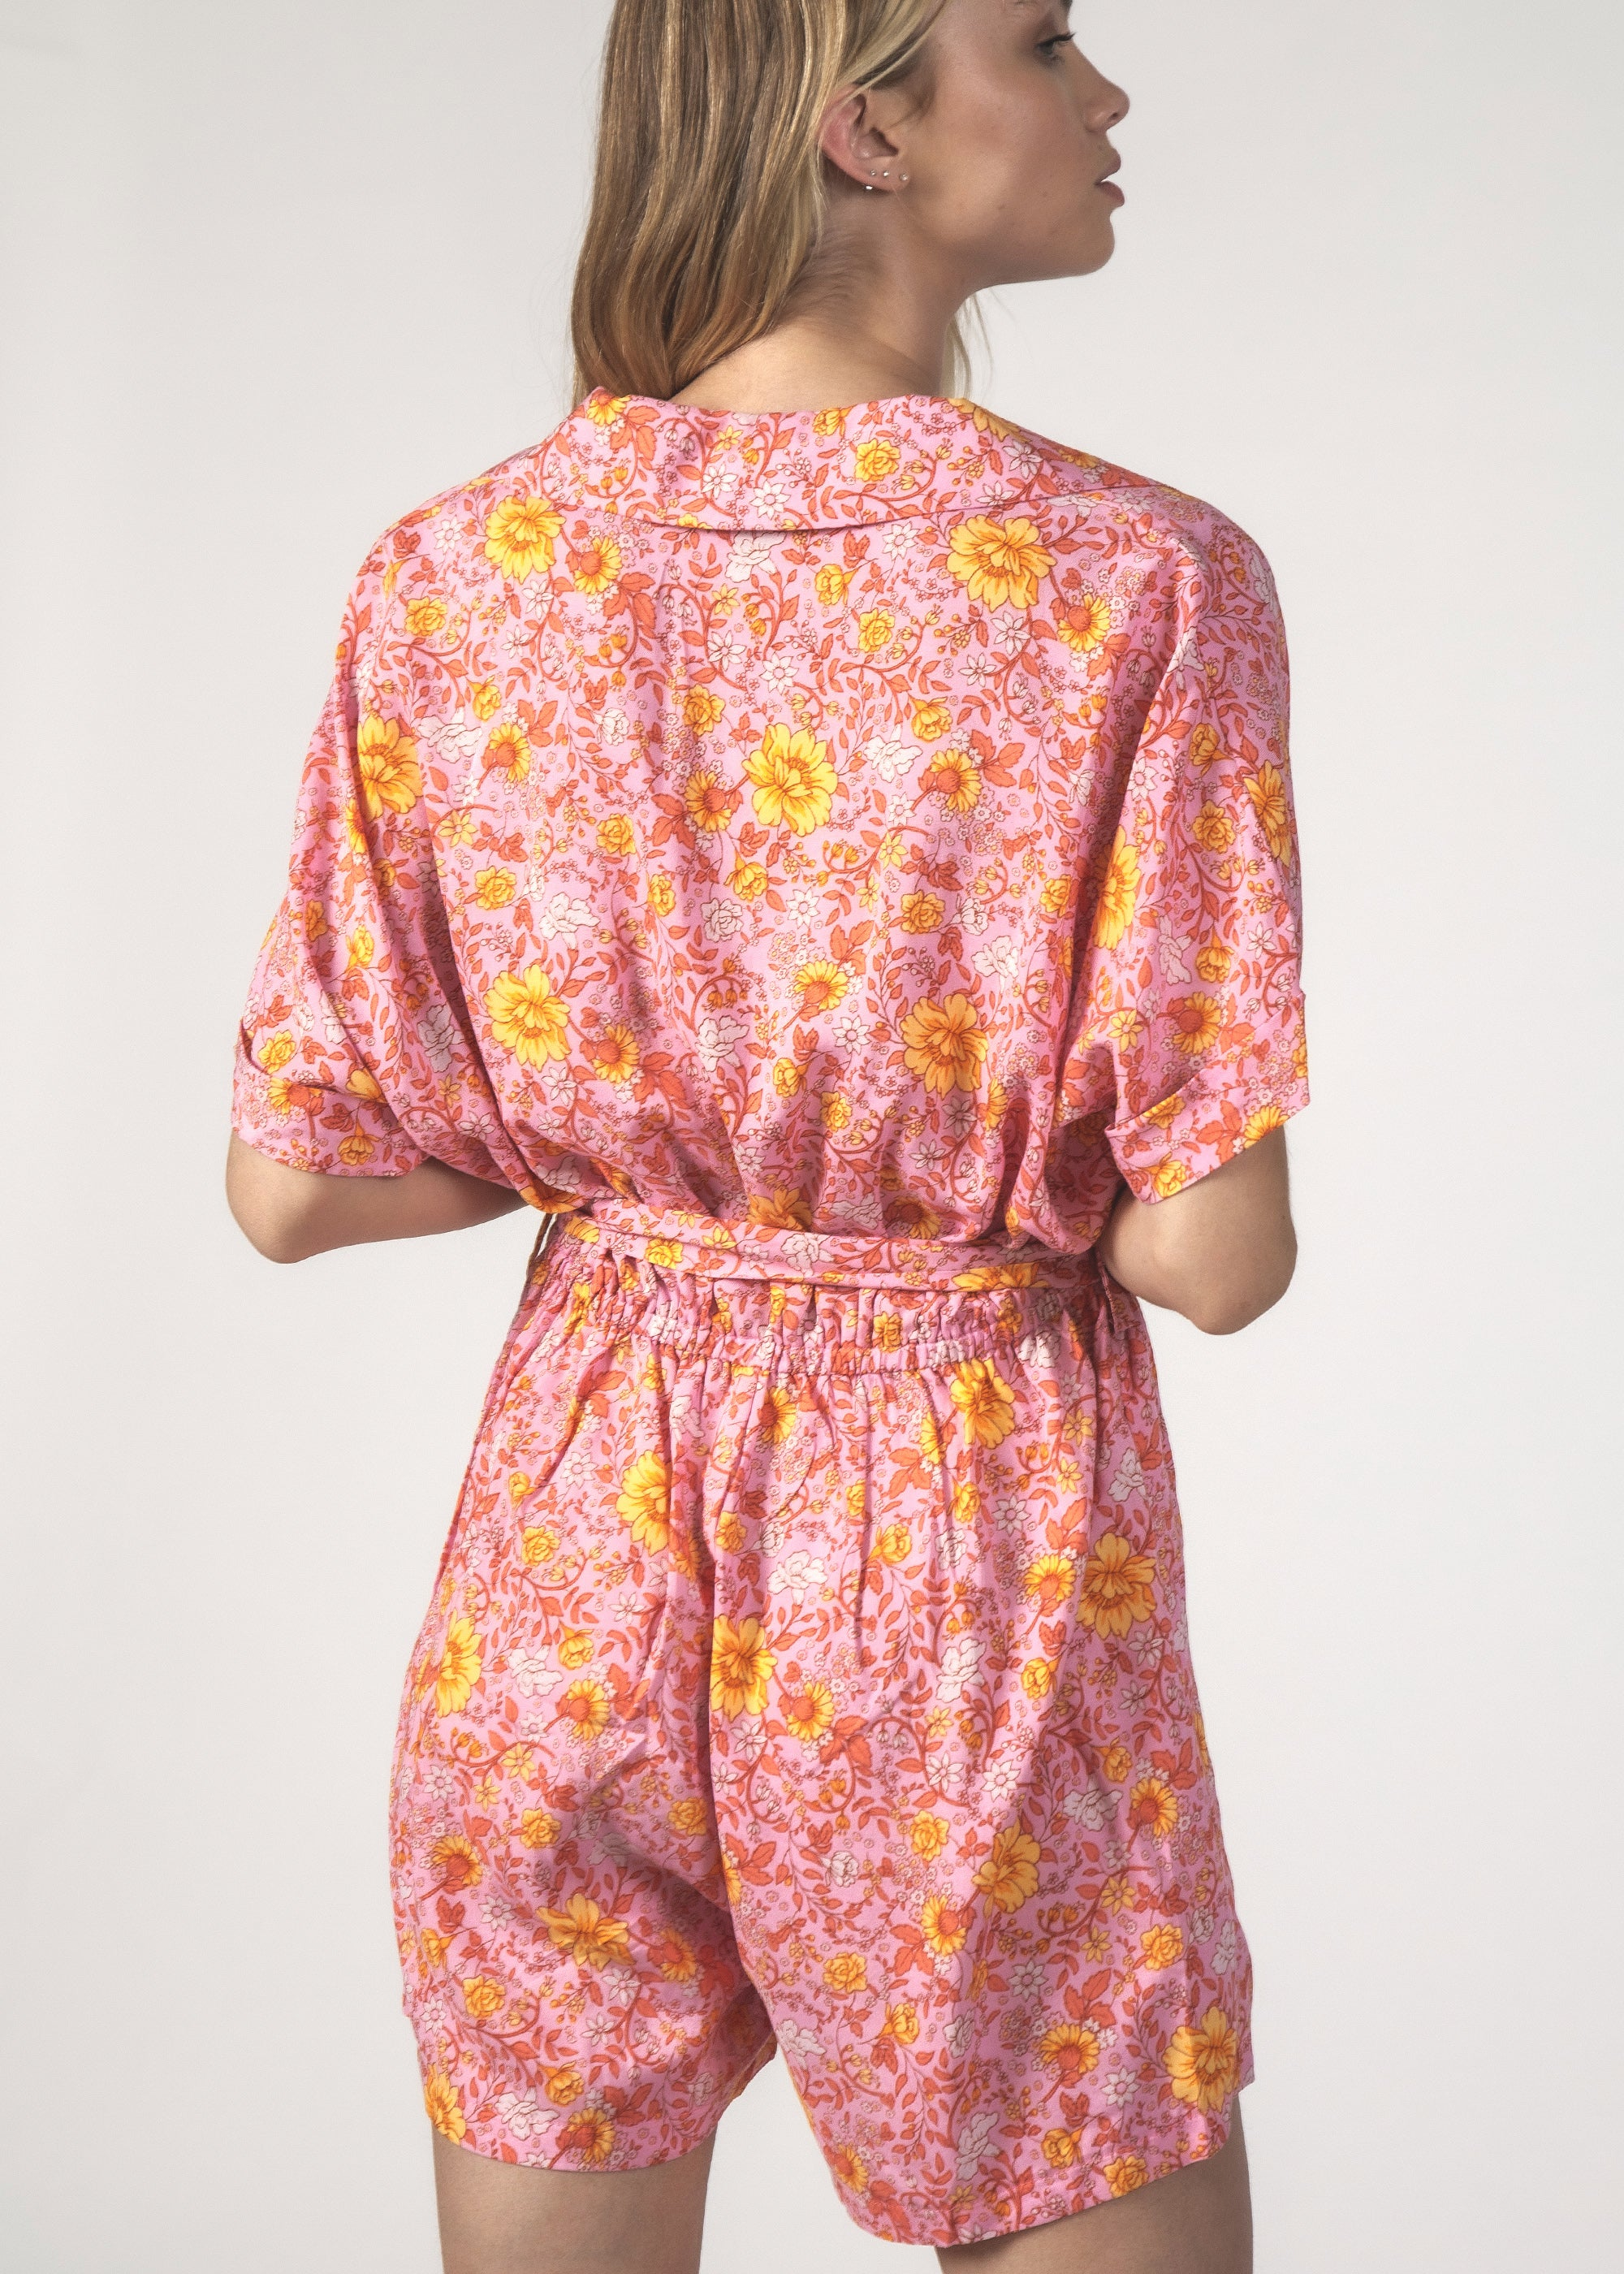 THE KITTY PLAYSUIT - FLORAL PINK